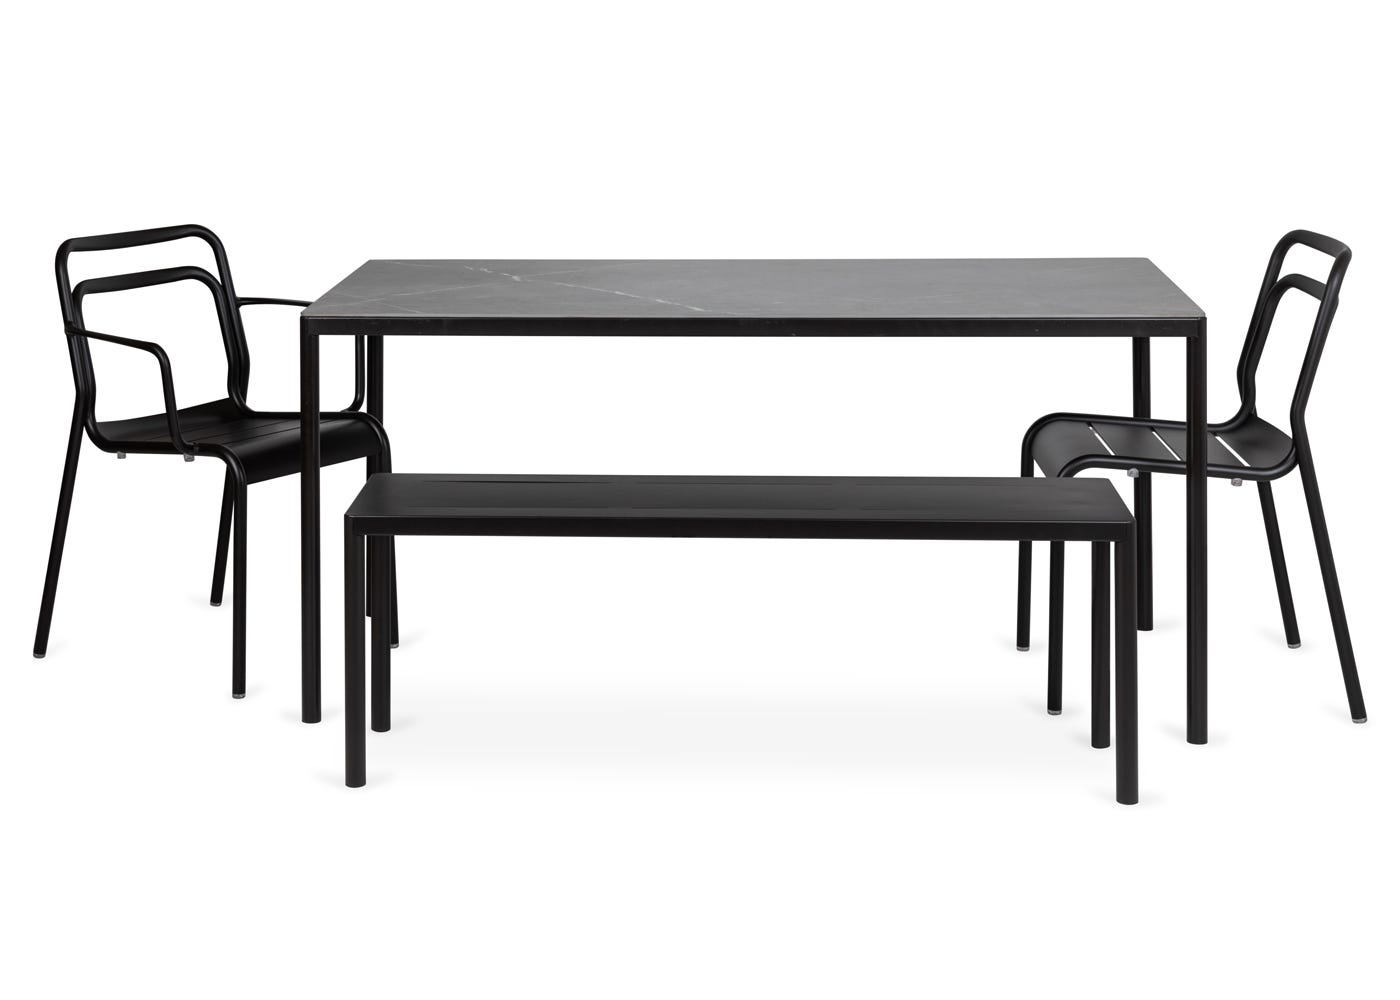 As shown: Petra outdoor dining table with match bench, armchair and side chair.